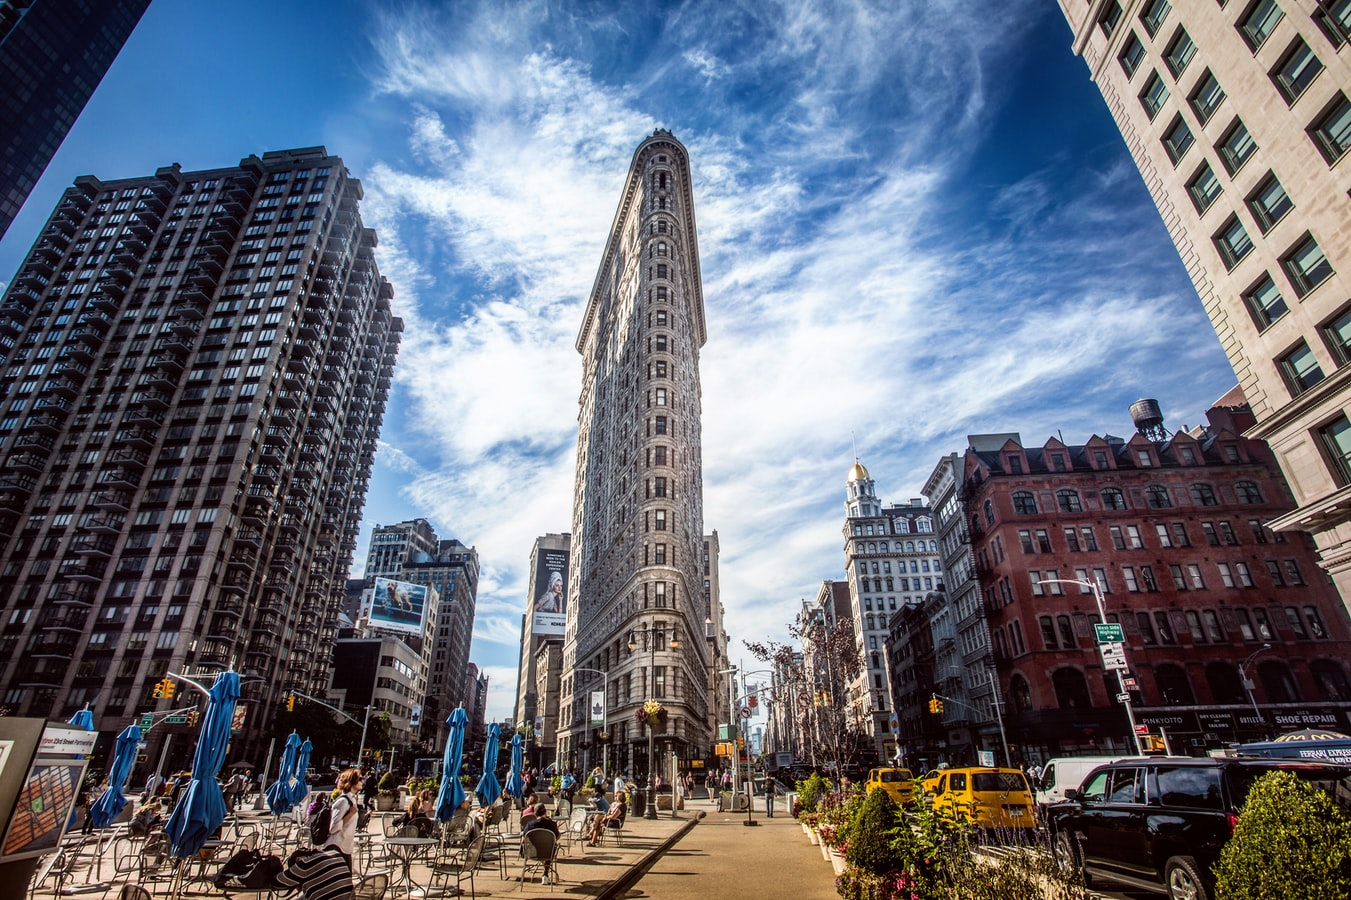 8 Facts About The Flatiron Building You Should Know